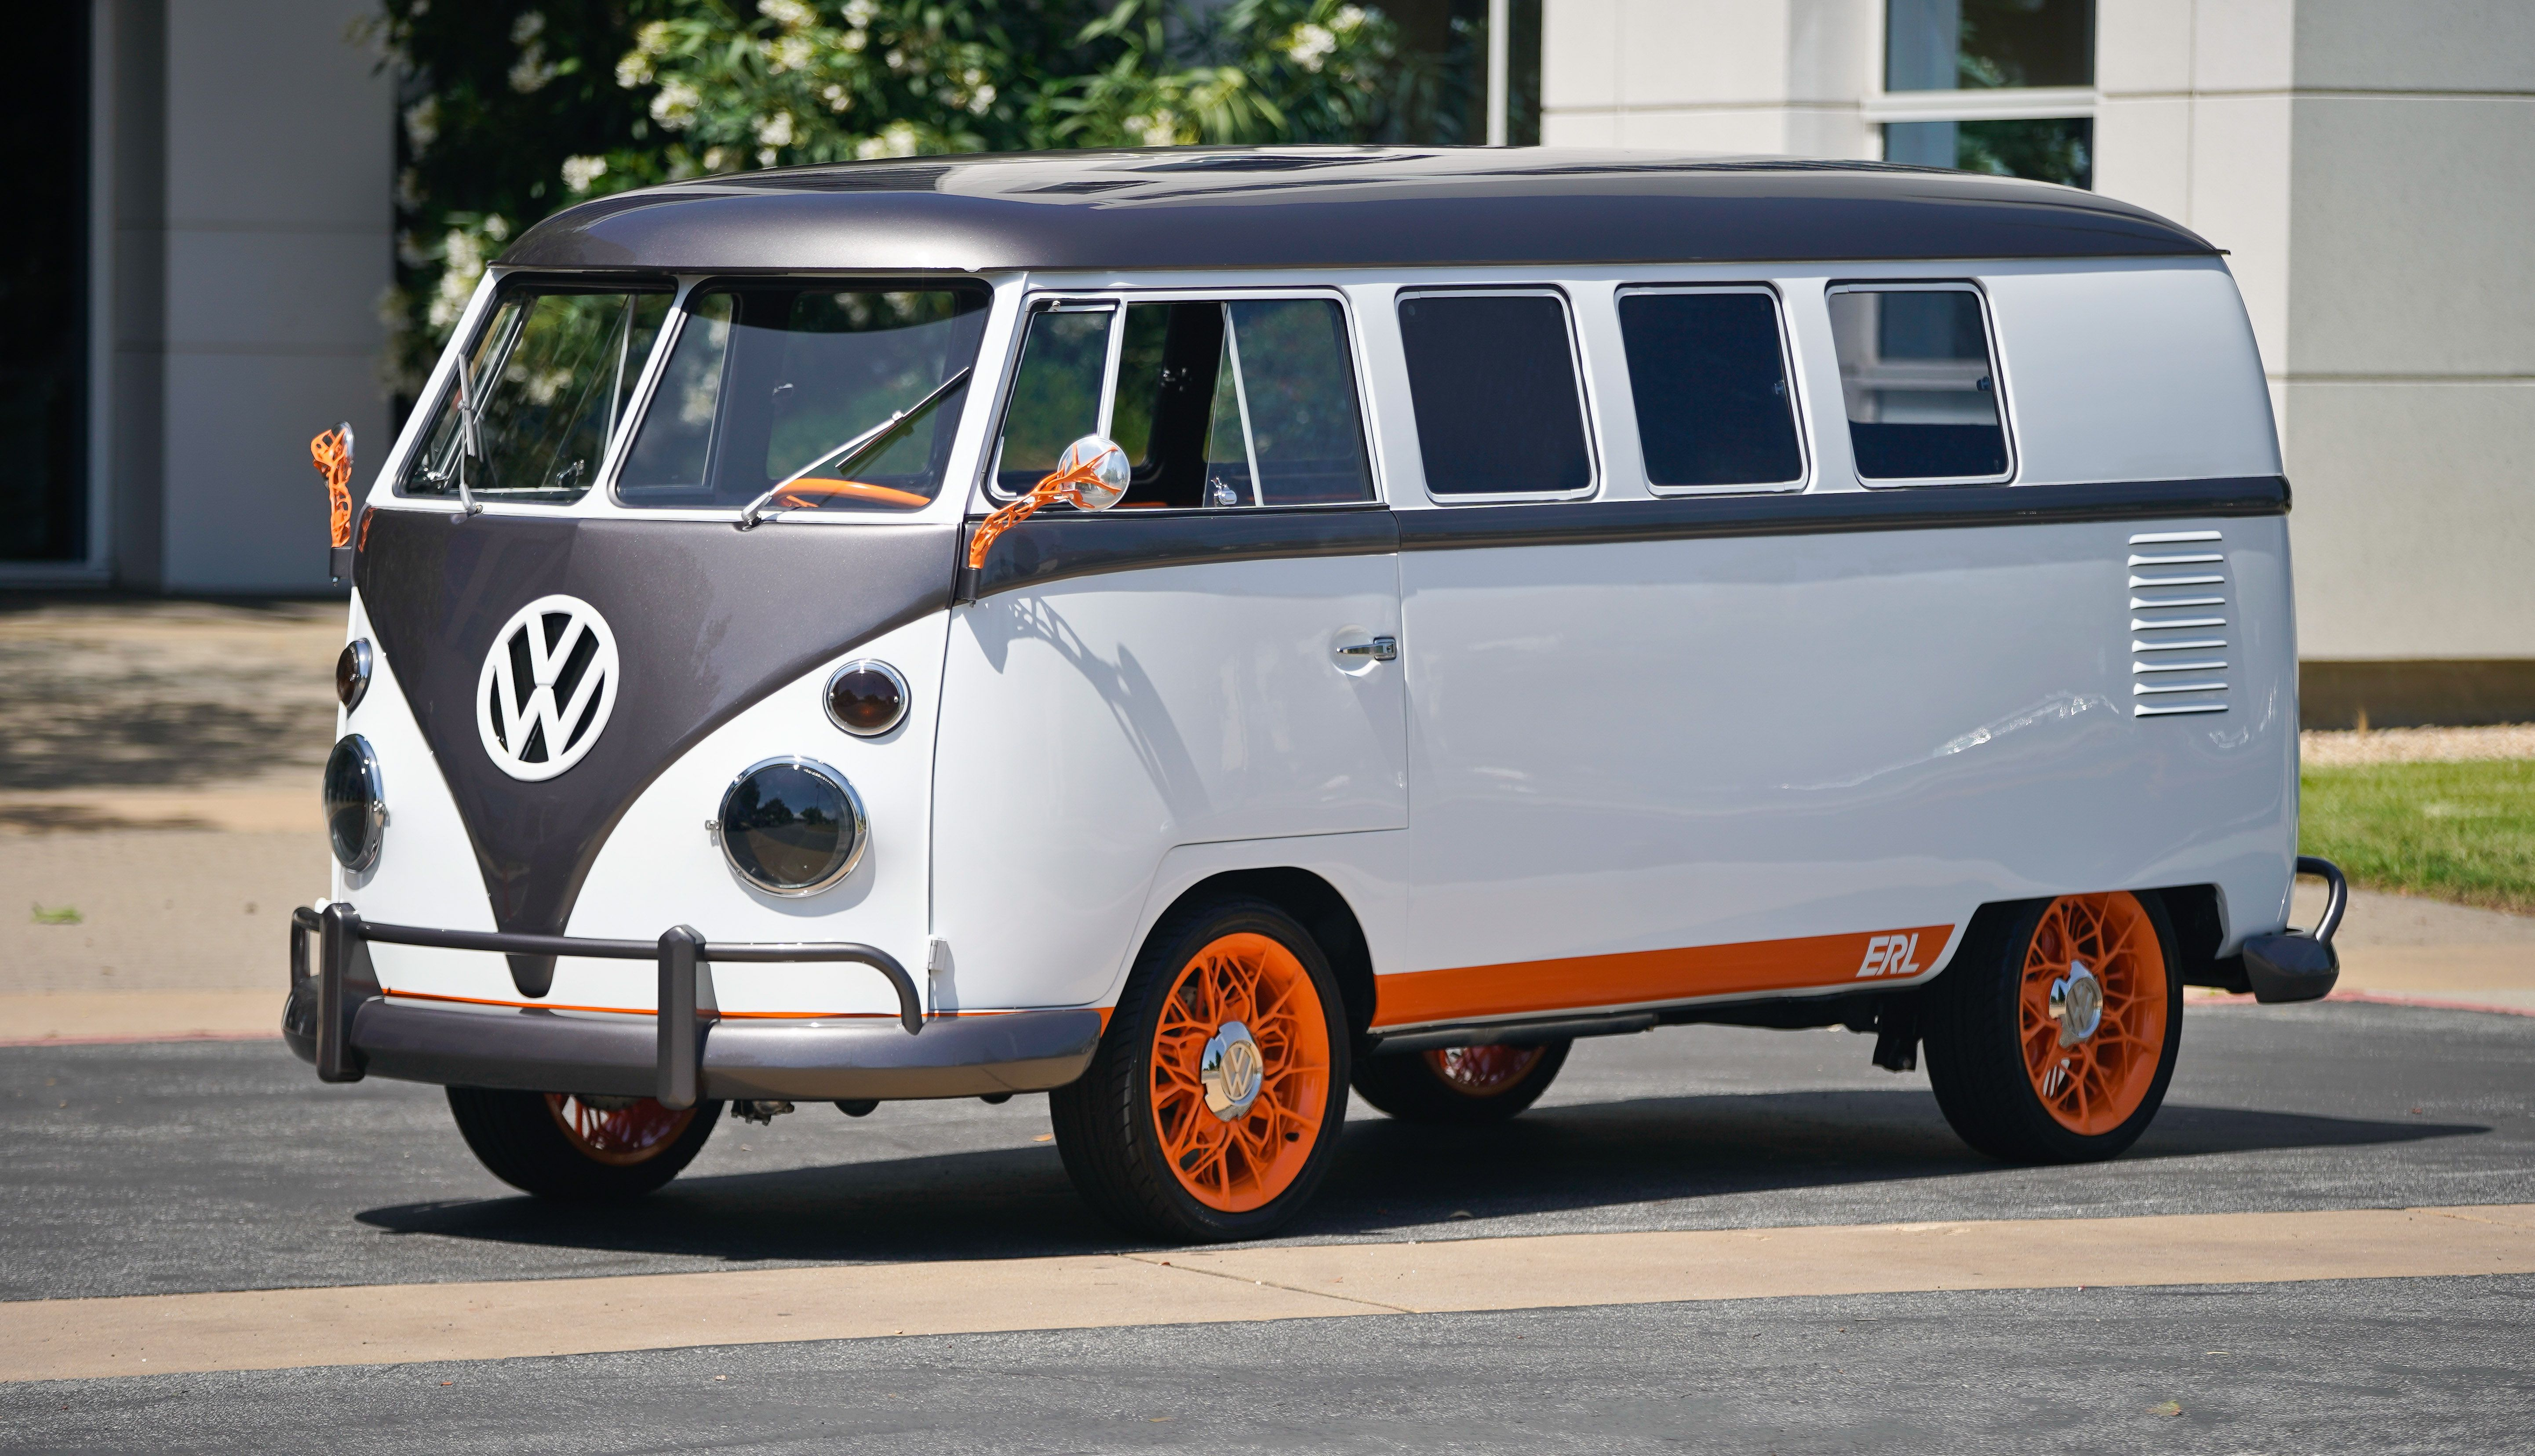 Volkswagen's EV Microbus Concept Will Thrill Fans of the